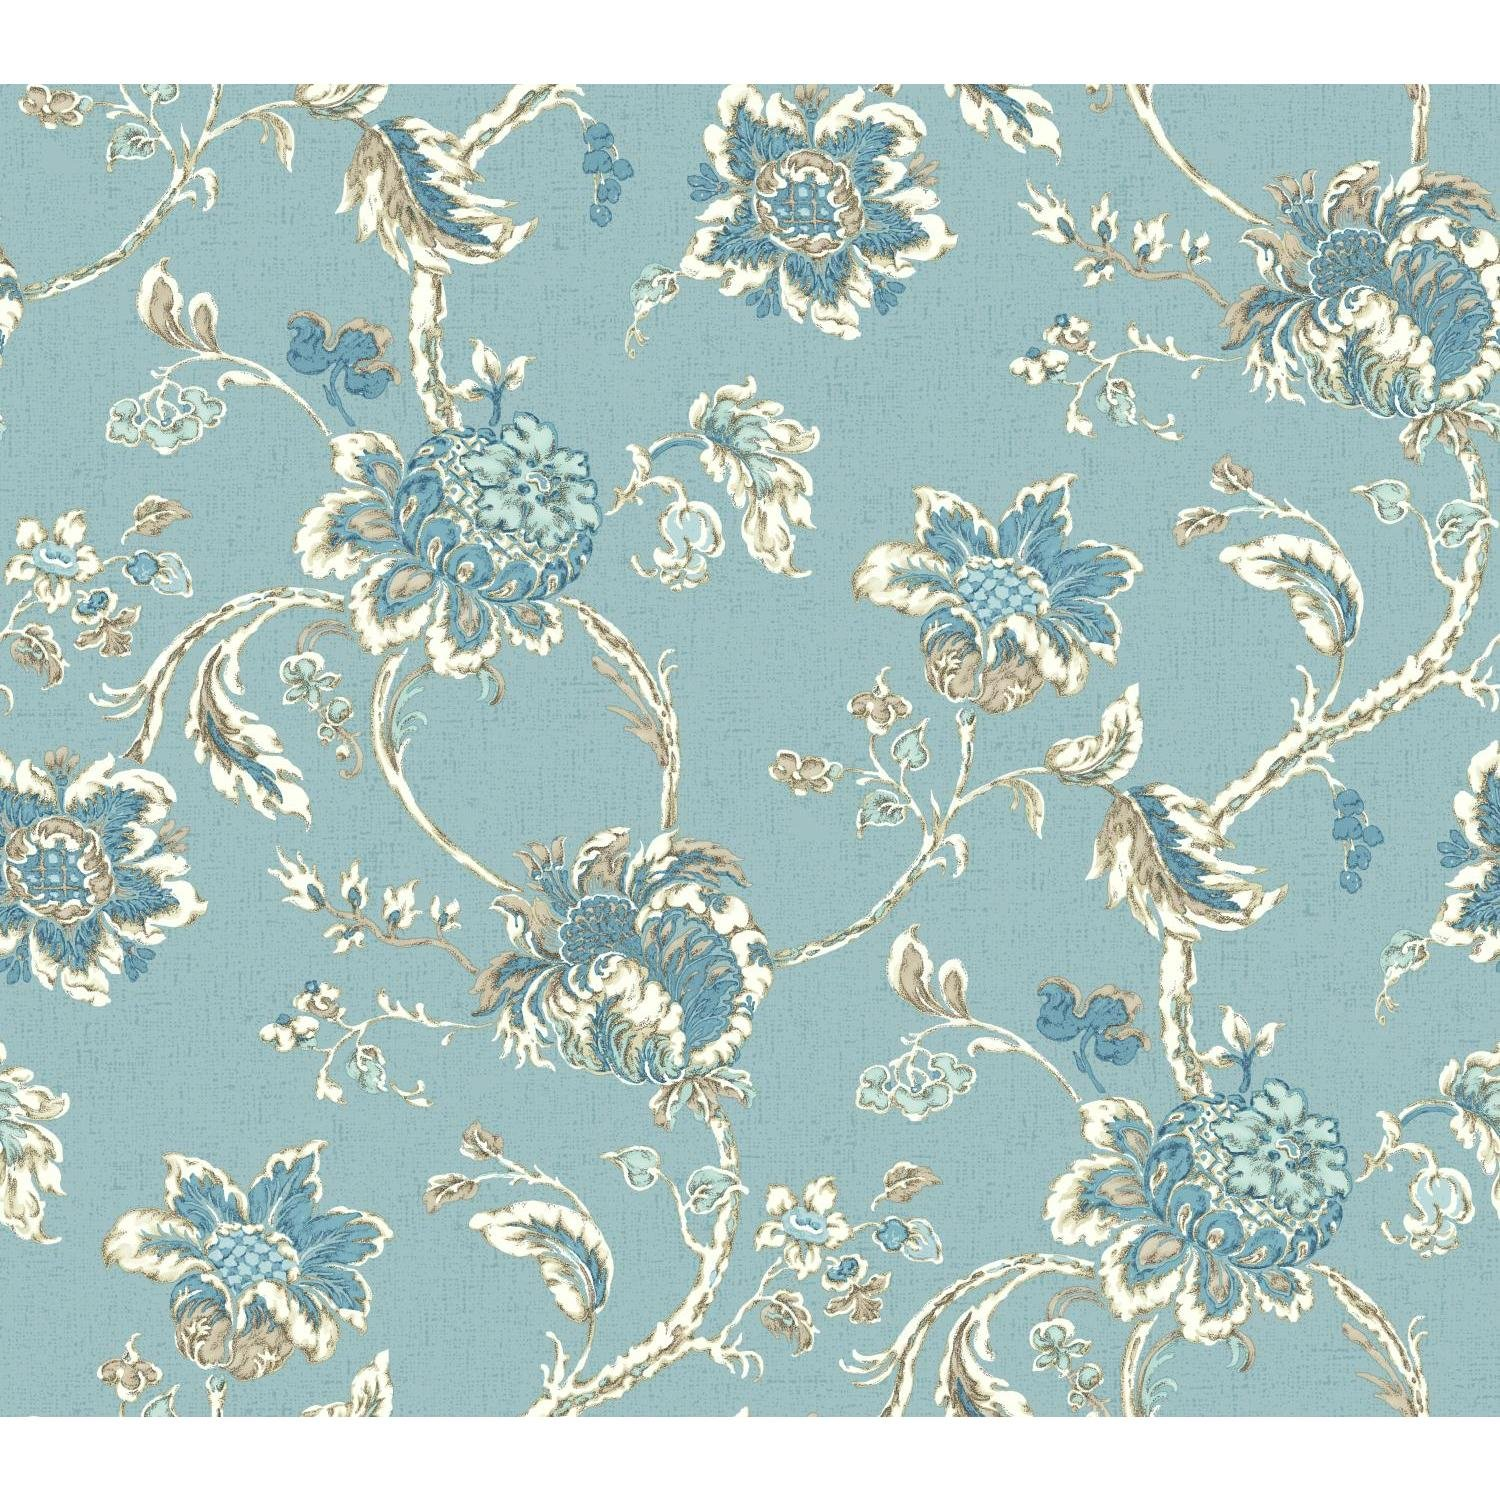 York Wallcoverings WC7522 Waverly Classics II Arbor Imagery 1500x1500